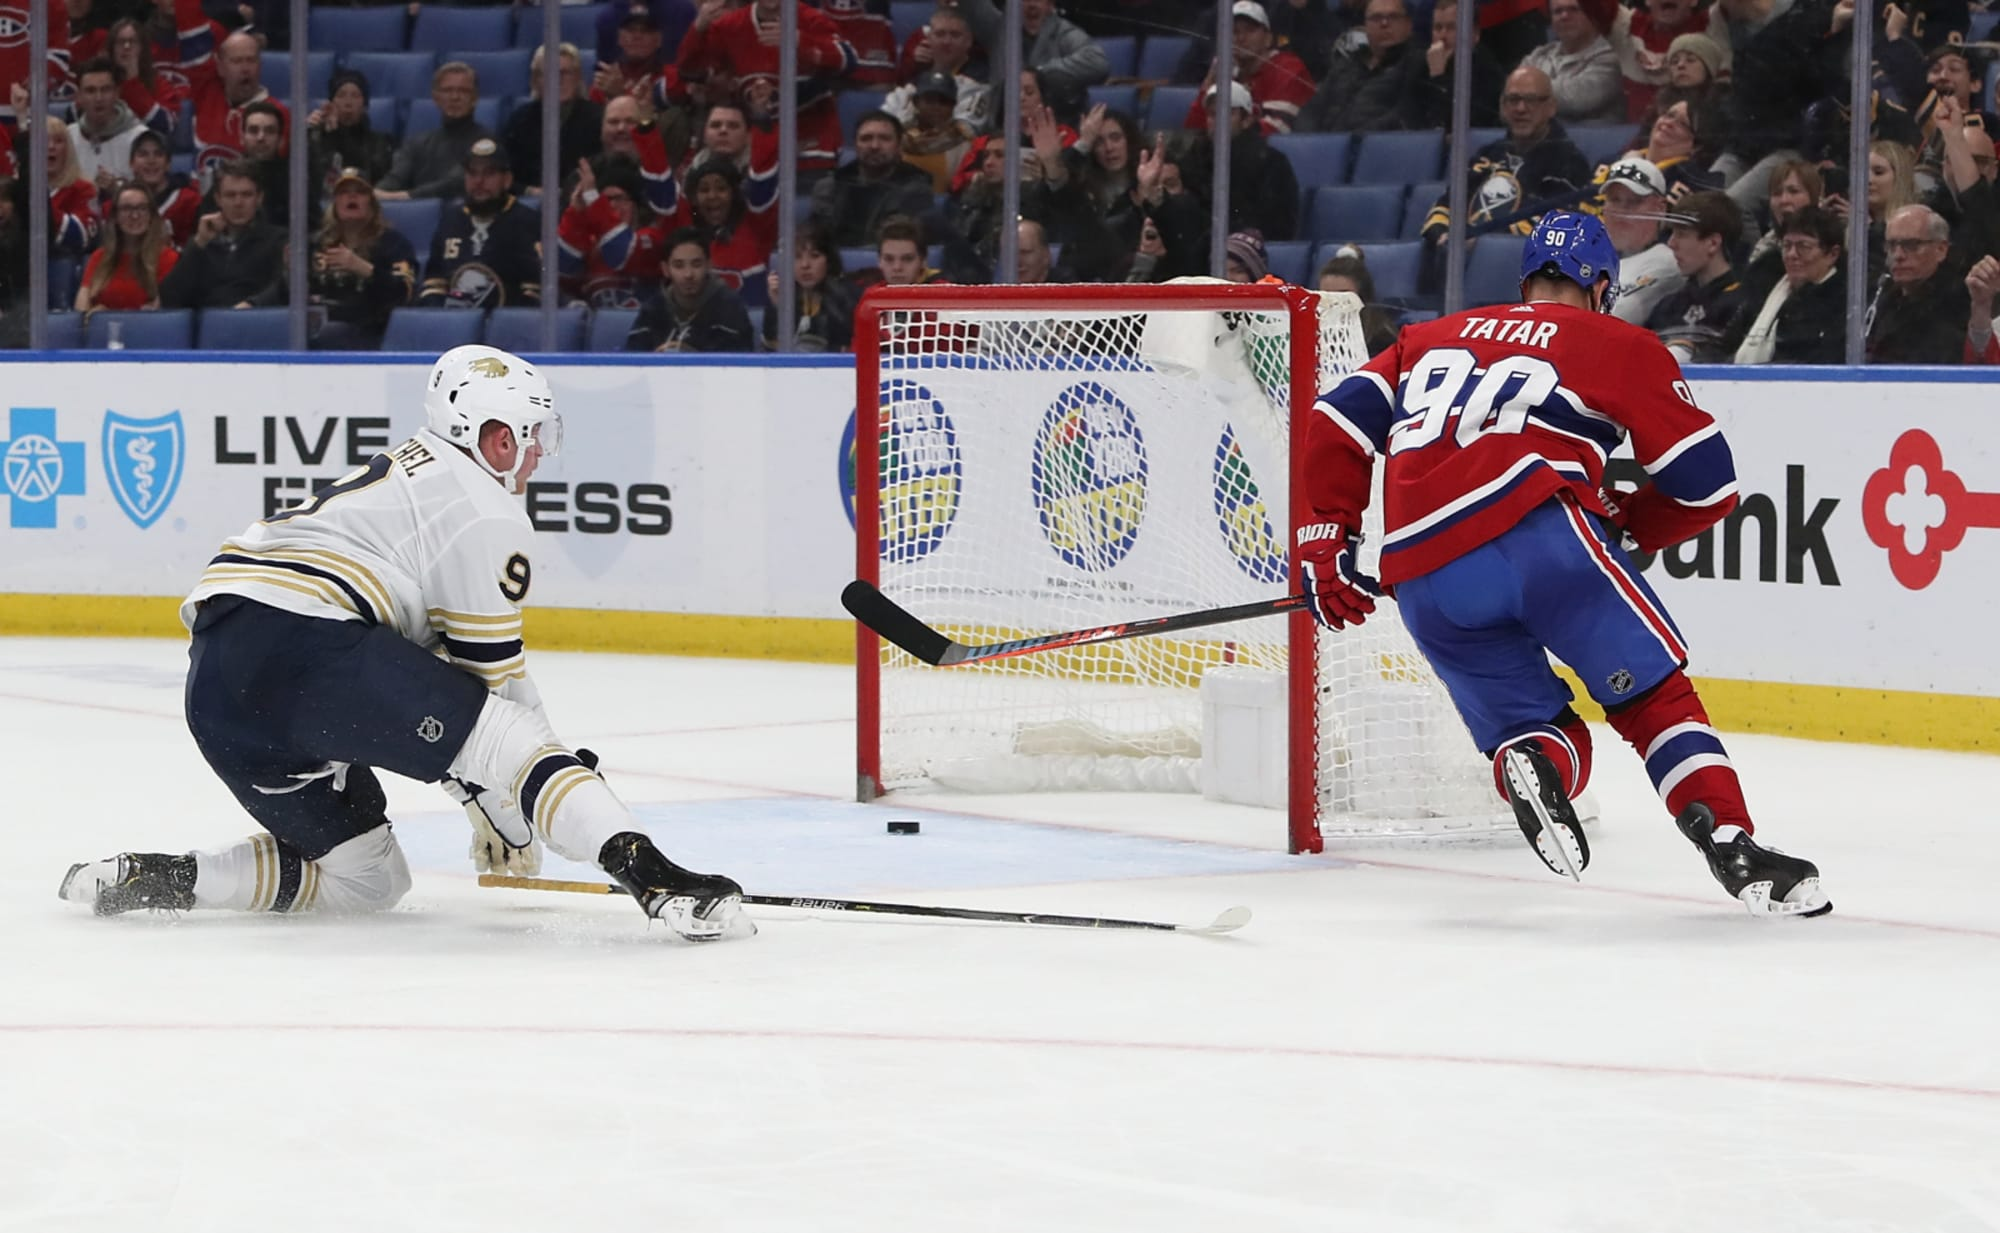 The Montreal Canadiens Need a Superstar Like Jack Eichel